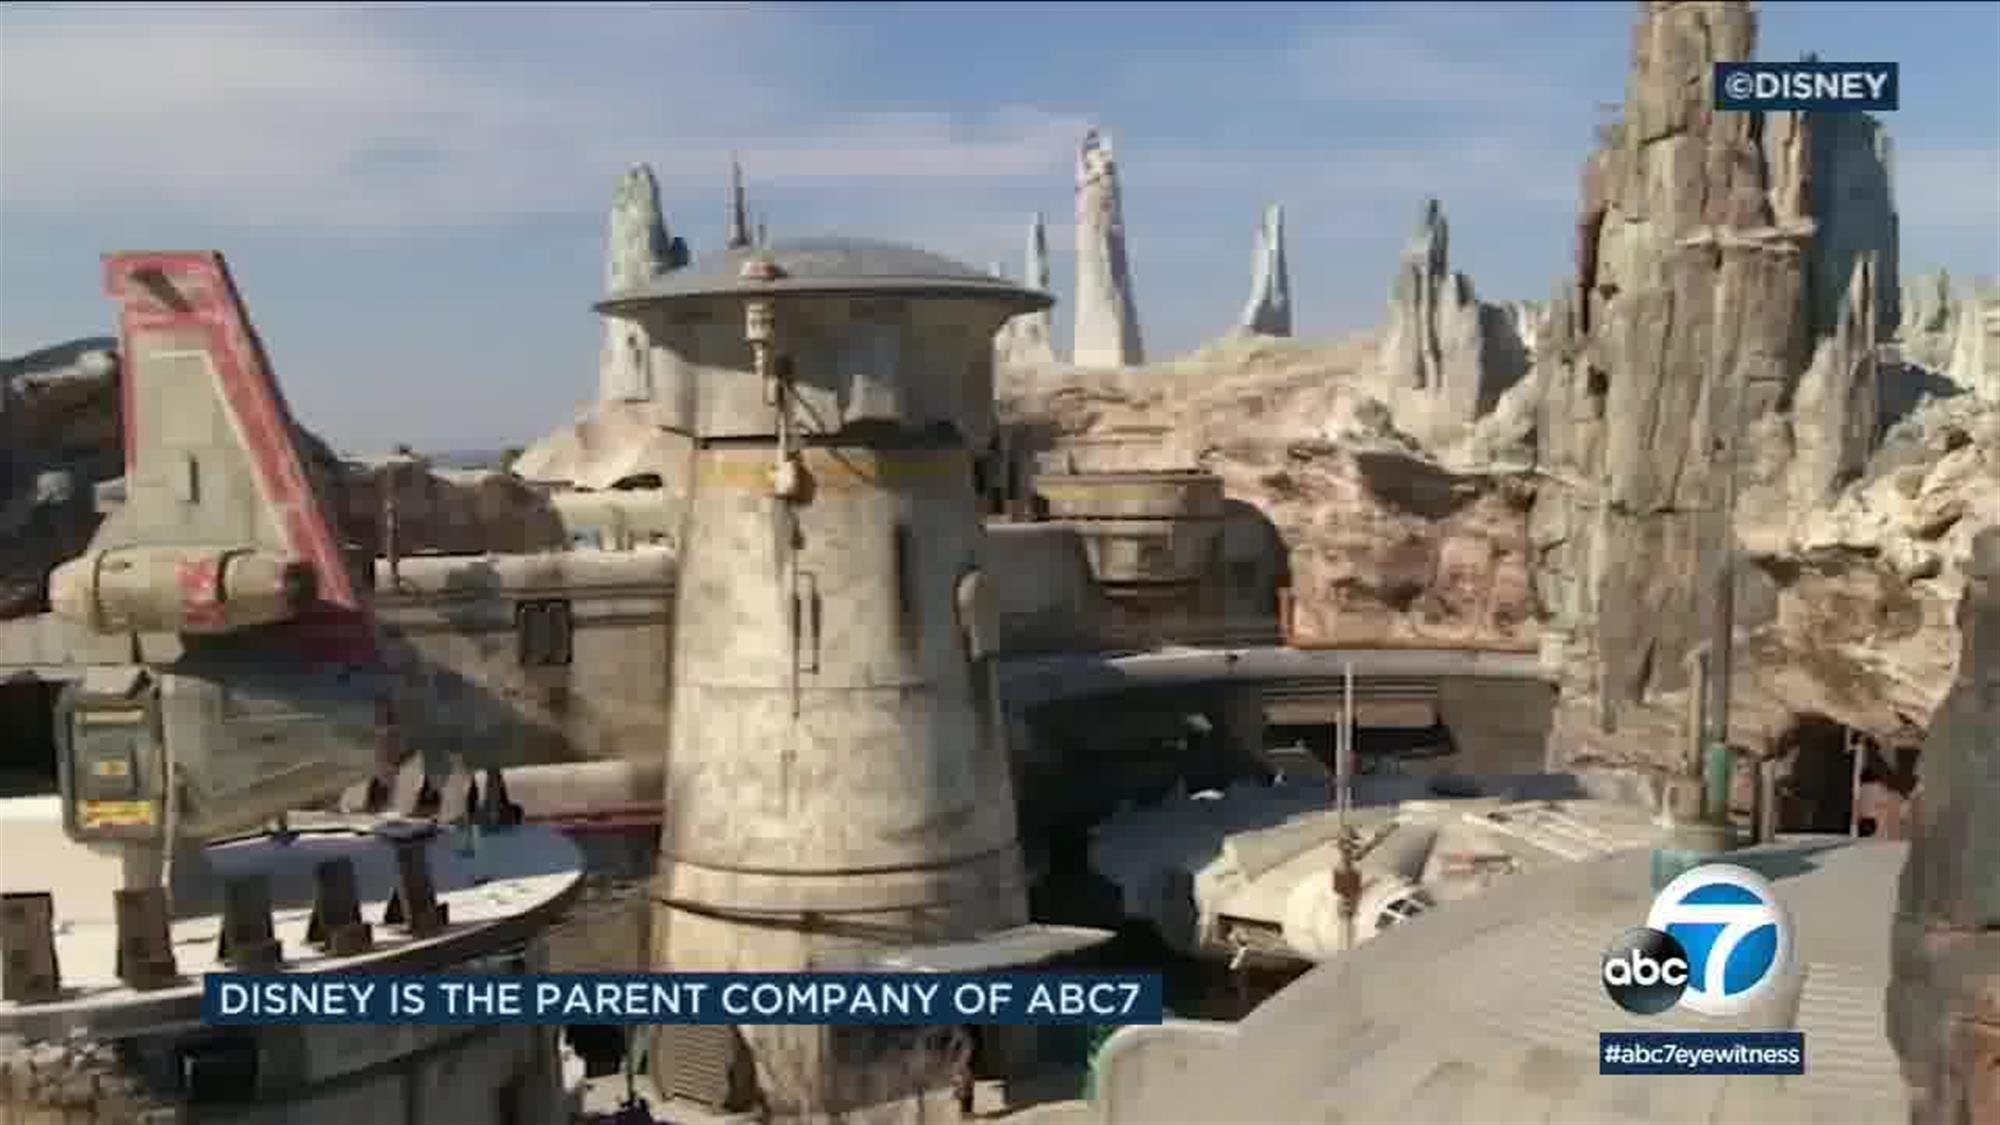 The legendary freighter the Millennium Falcon is docked at the central focal point of Batuu, just outside the entrance to the Smuggler's run attraction.